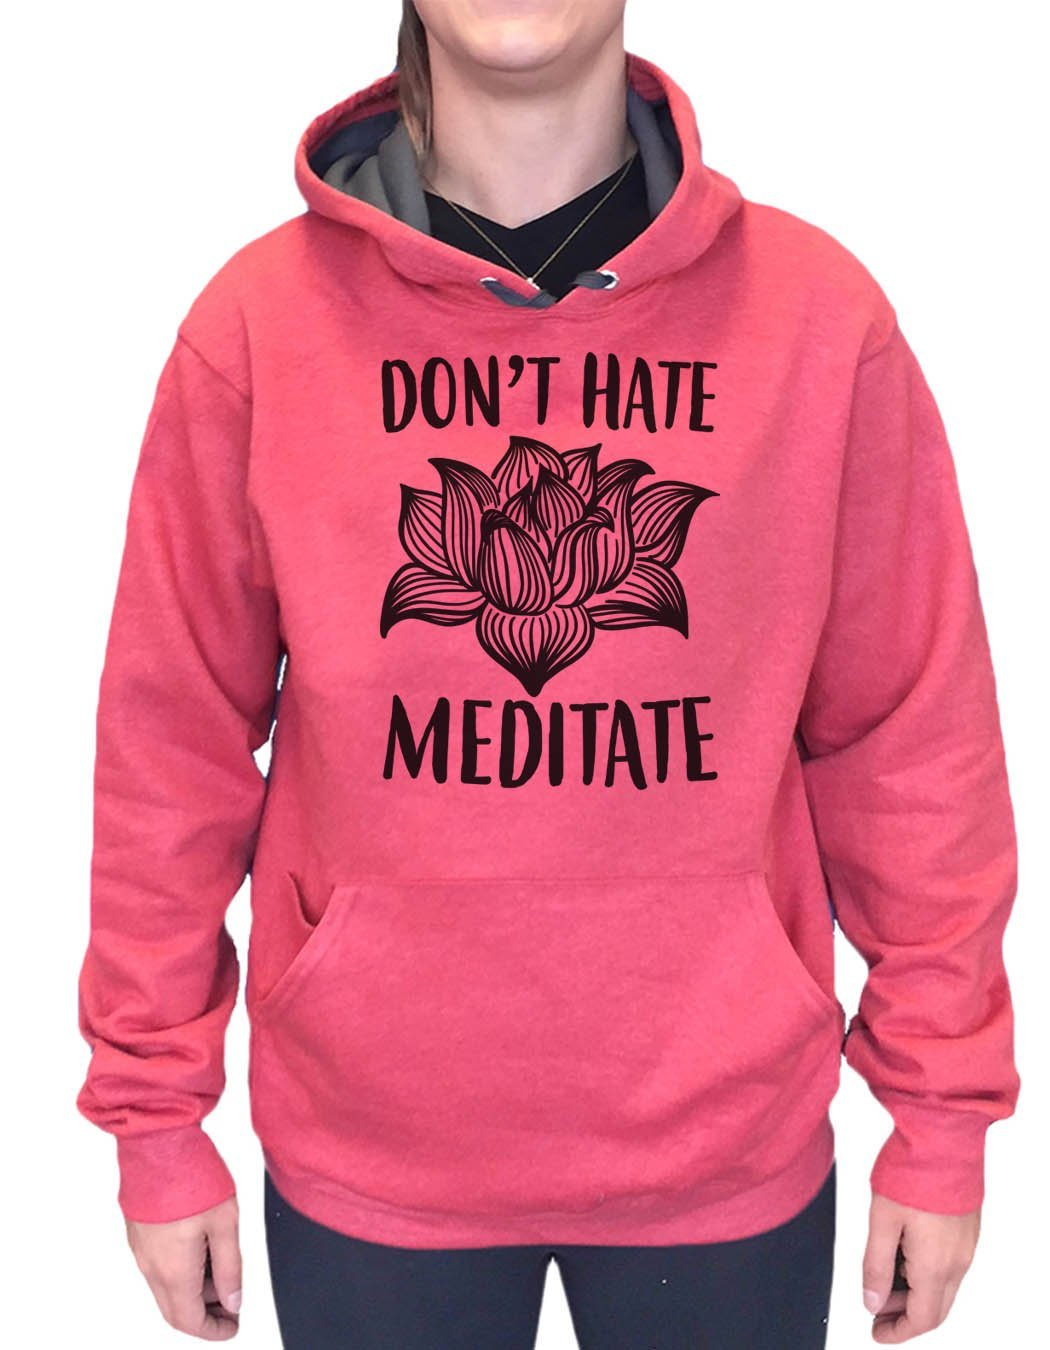 UNISEX HOODIE - Don't Hate Meditate - FUNNY MENS AND WOMENS HOODED SWEATSHIRTS - 2114 Funny Shirt Small / Cranberry Red